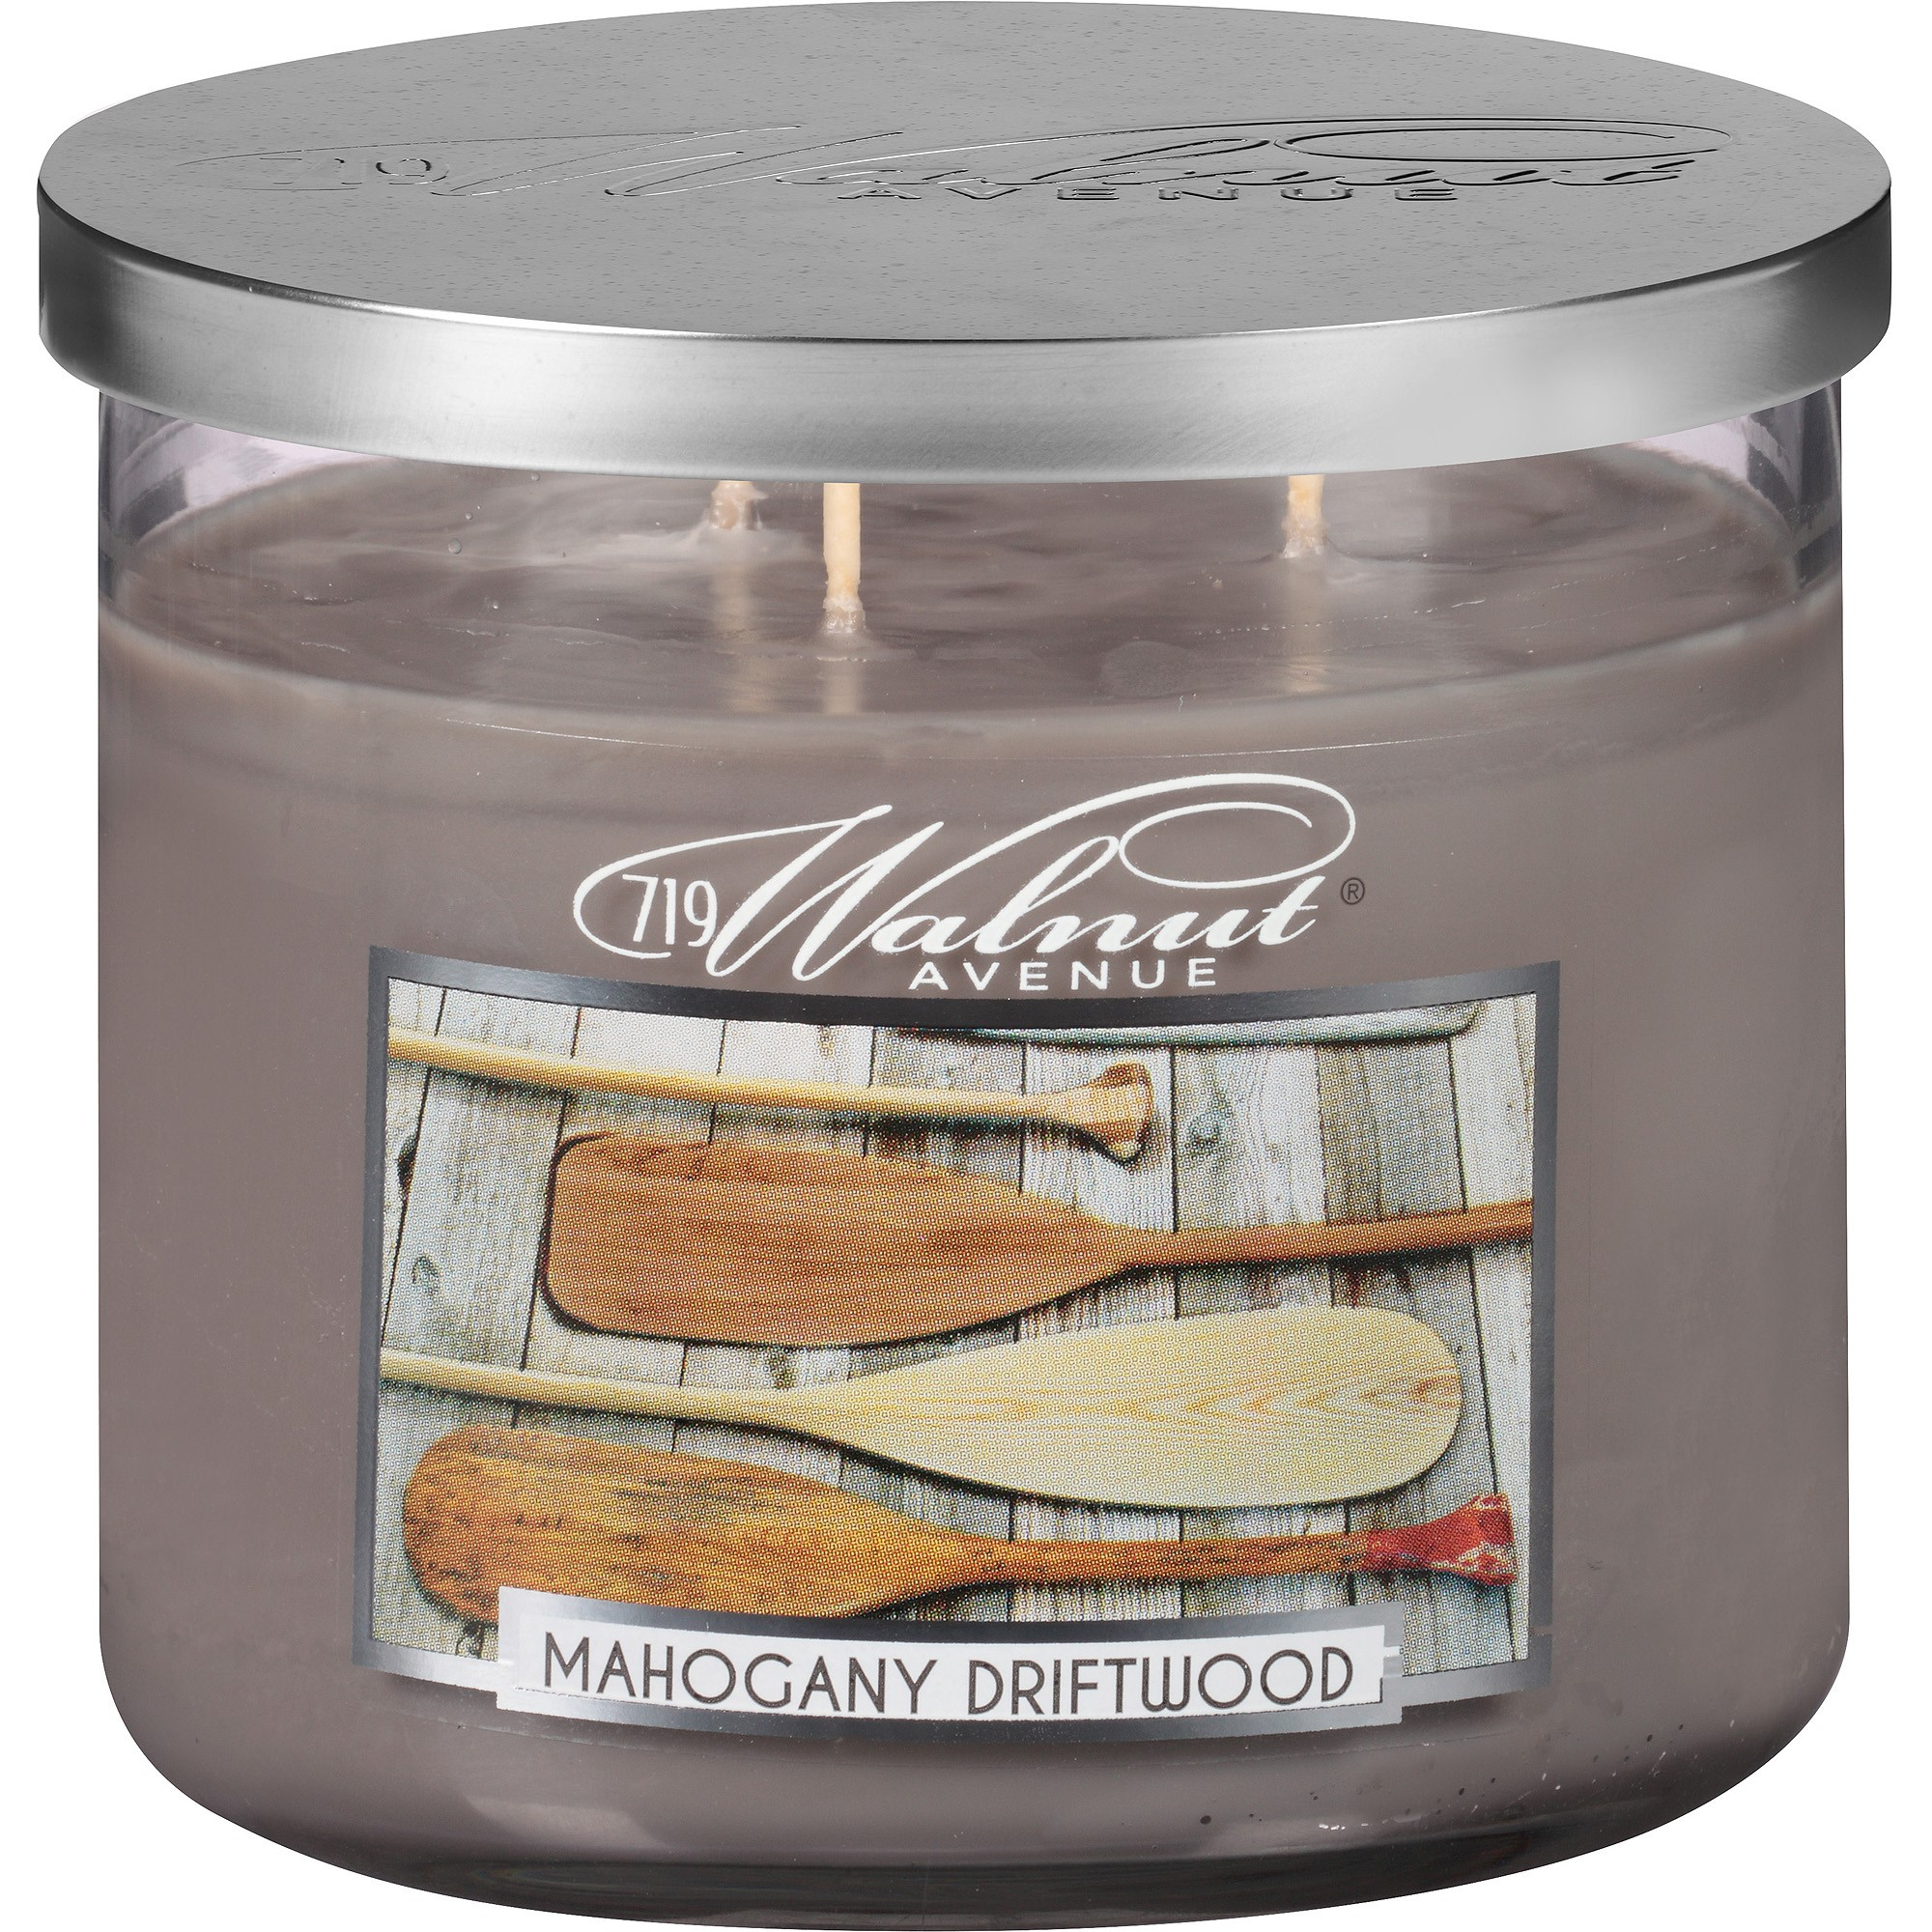 719 Walnut Avenue Scented Candle, Mahogany Driftwood, 14 Oz by 719 Walnut Avenue